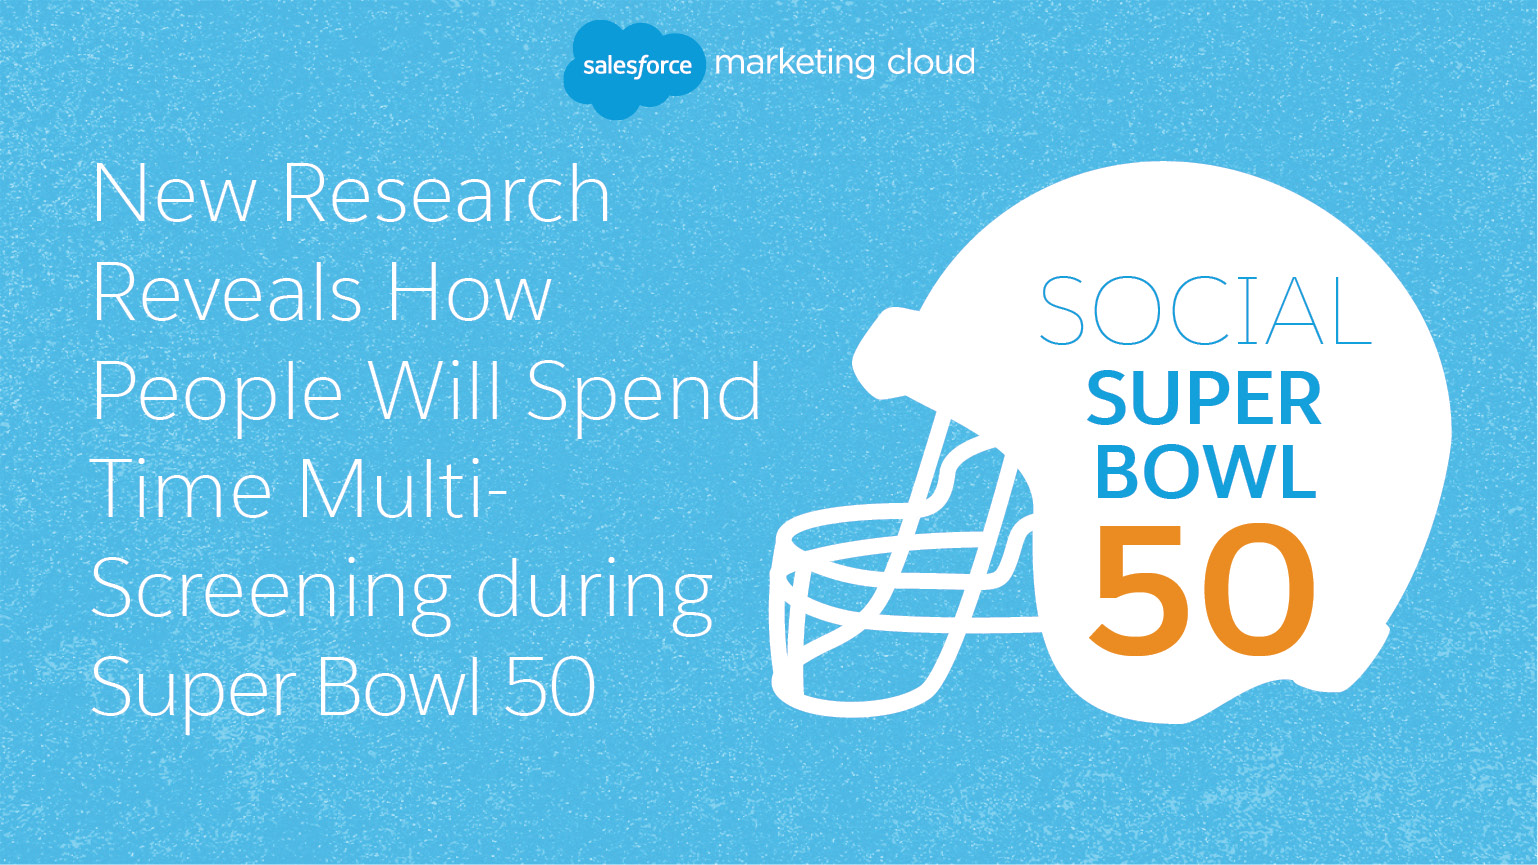 New Research Reveals How People Will Spend Time Multi-Screening During Super Bowl 50